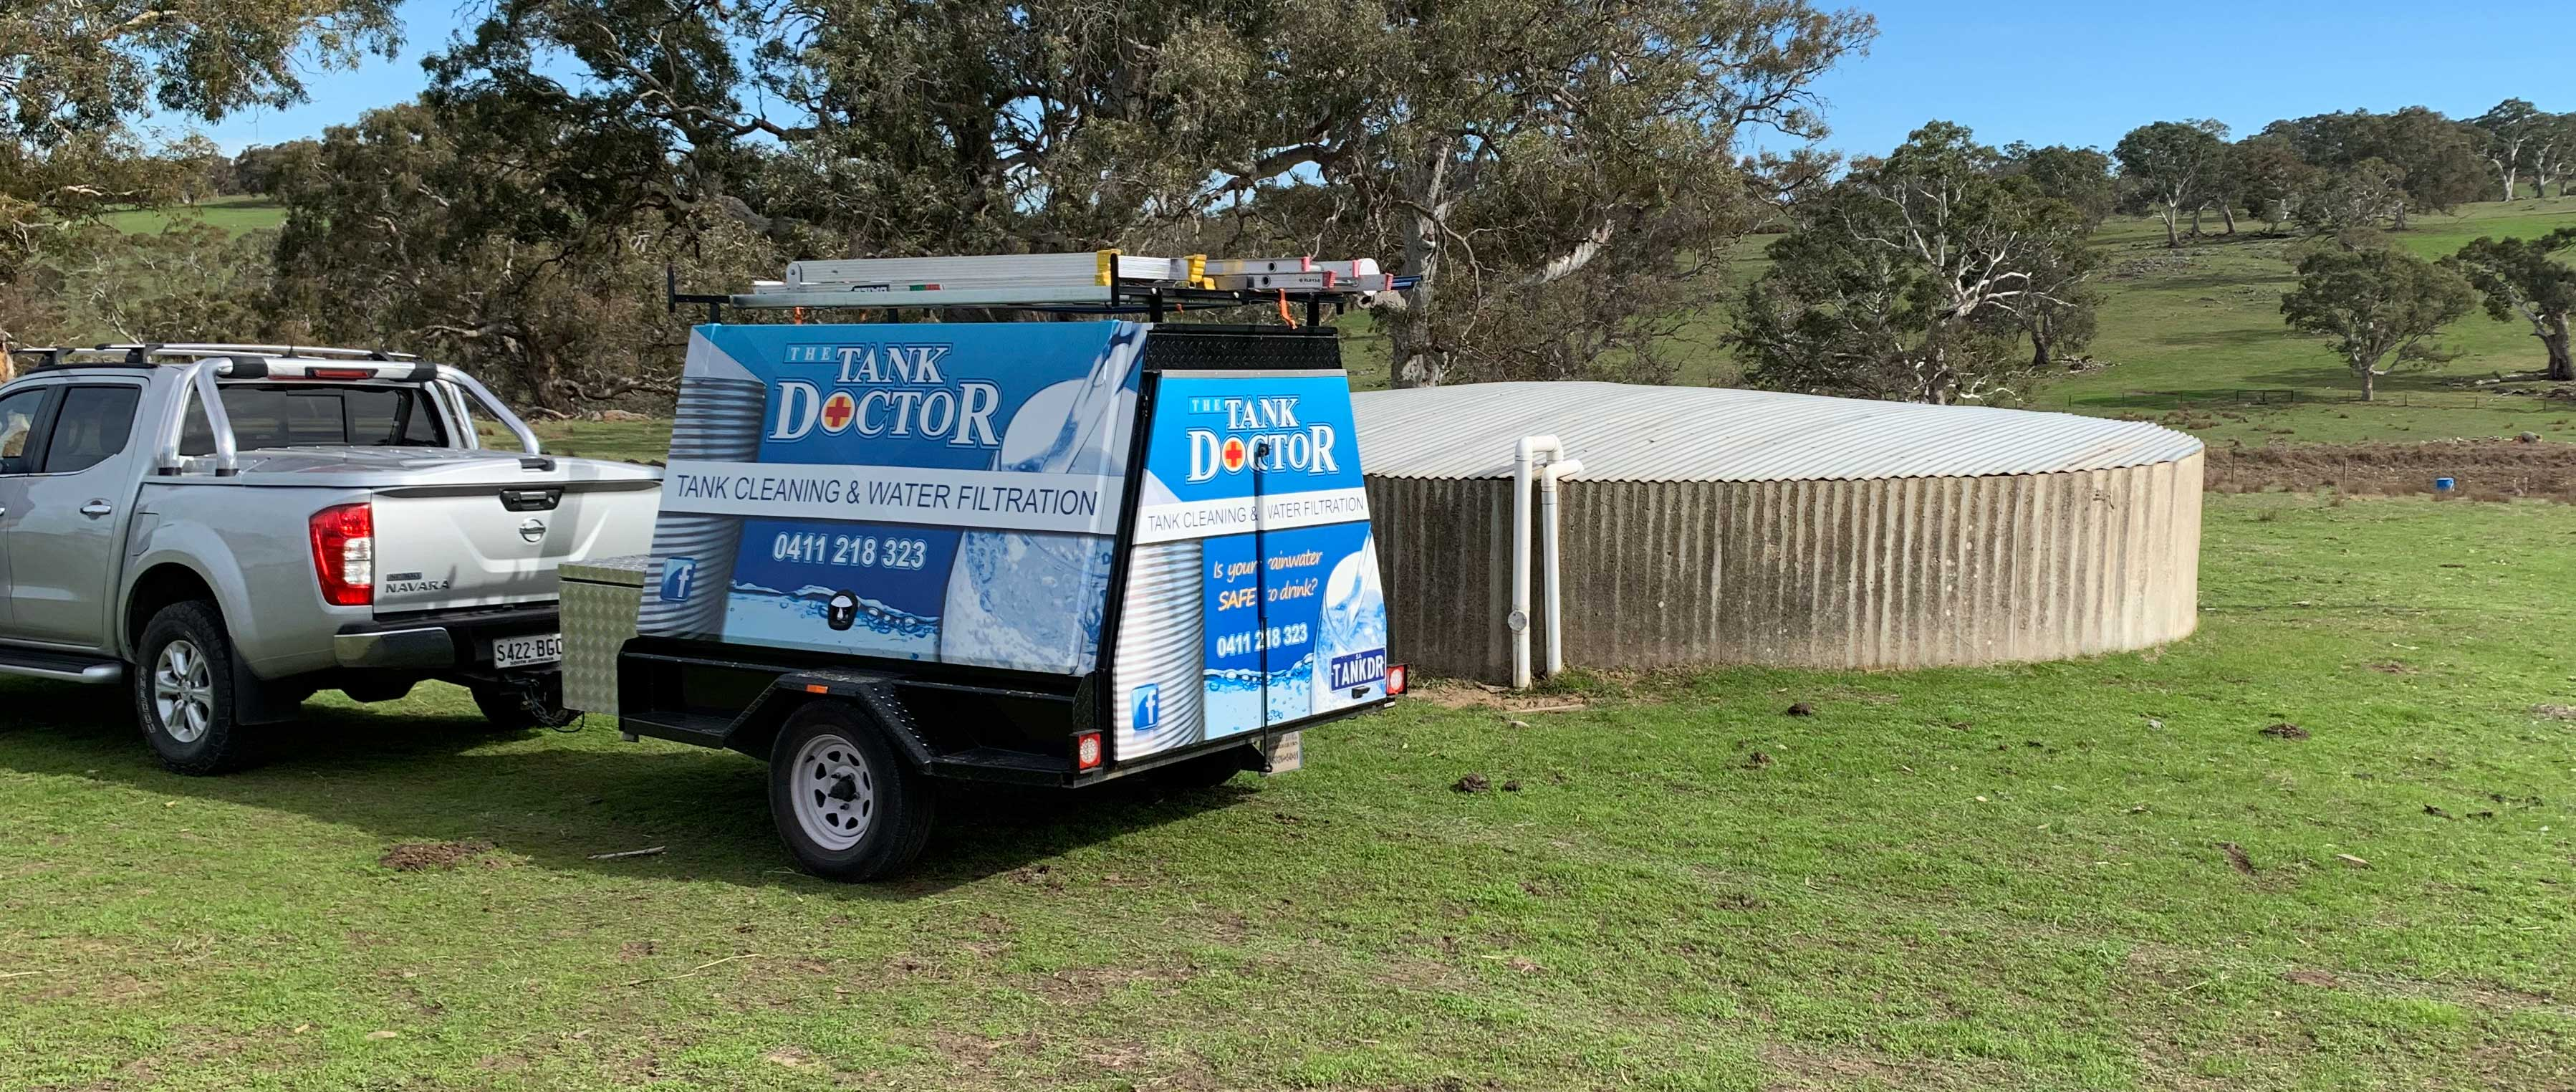 Rainwater Tank Cleaning Service Adelaide - The Tank Doctor